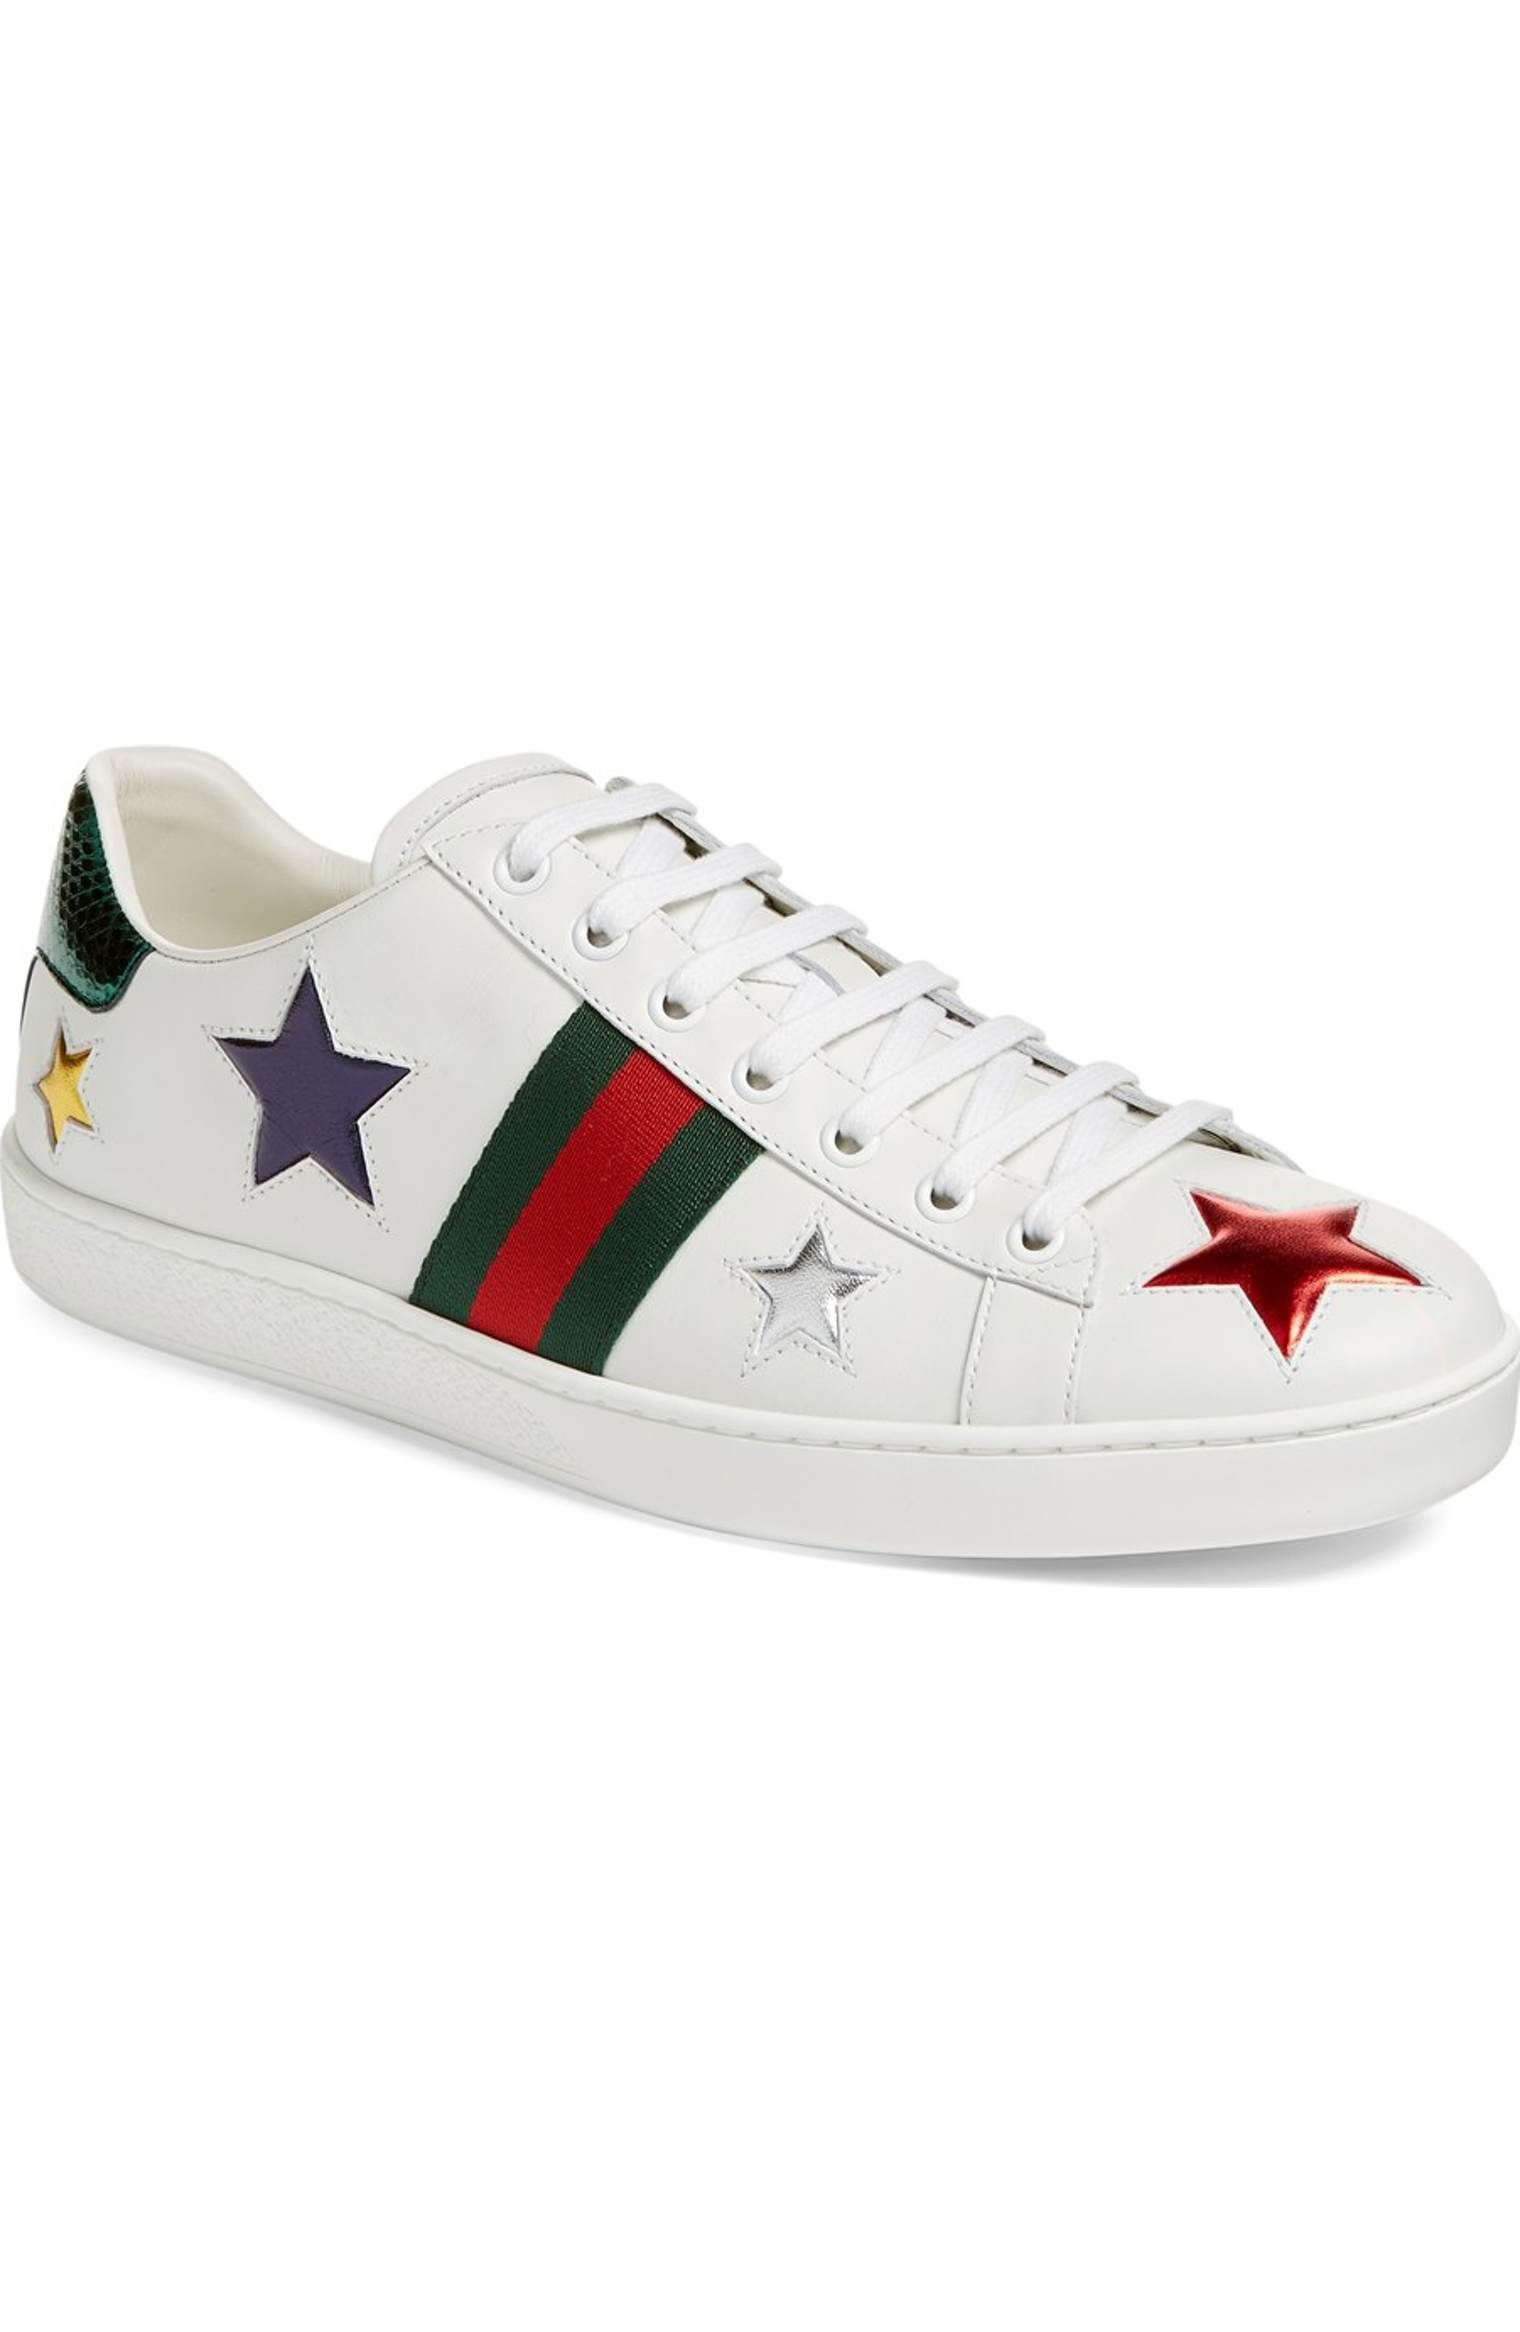 Main Image - Gucci New Ace Star Sneaker (Women)   Want It ... bbb0b0fa351d